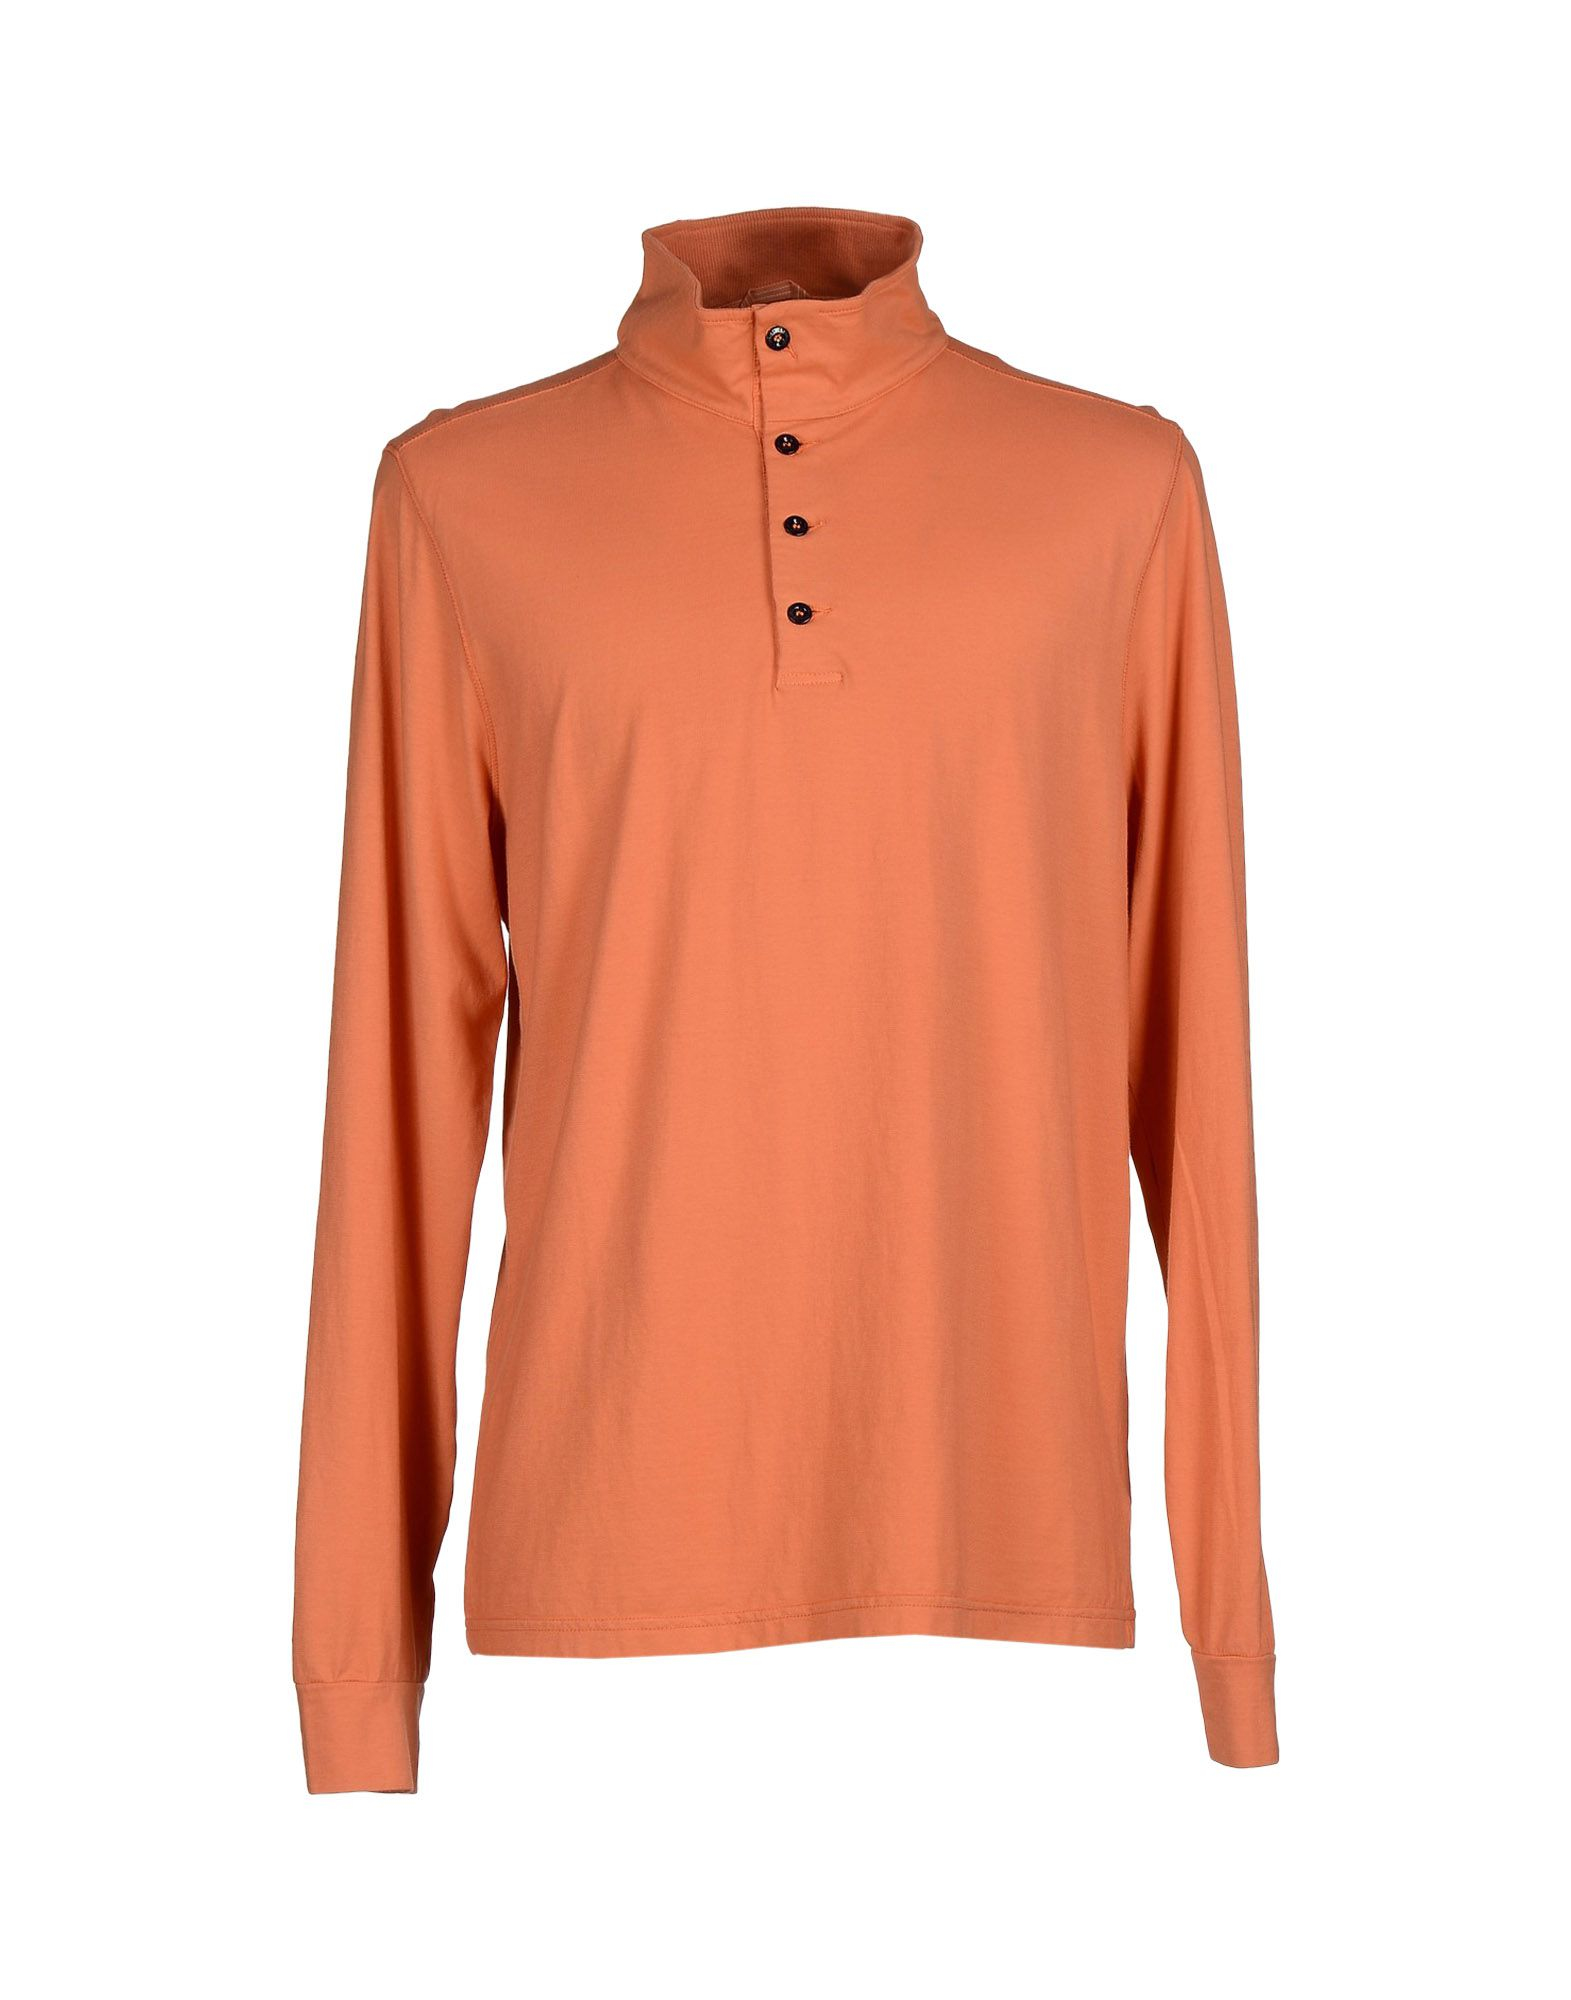 Lyst c p company t shirt in orange for men for T shirt for company